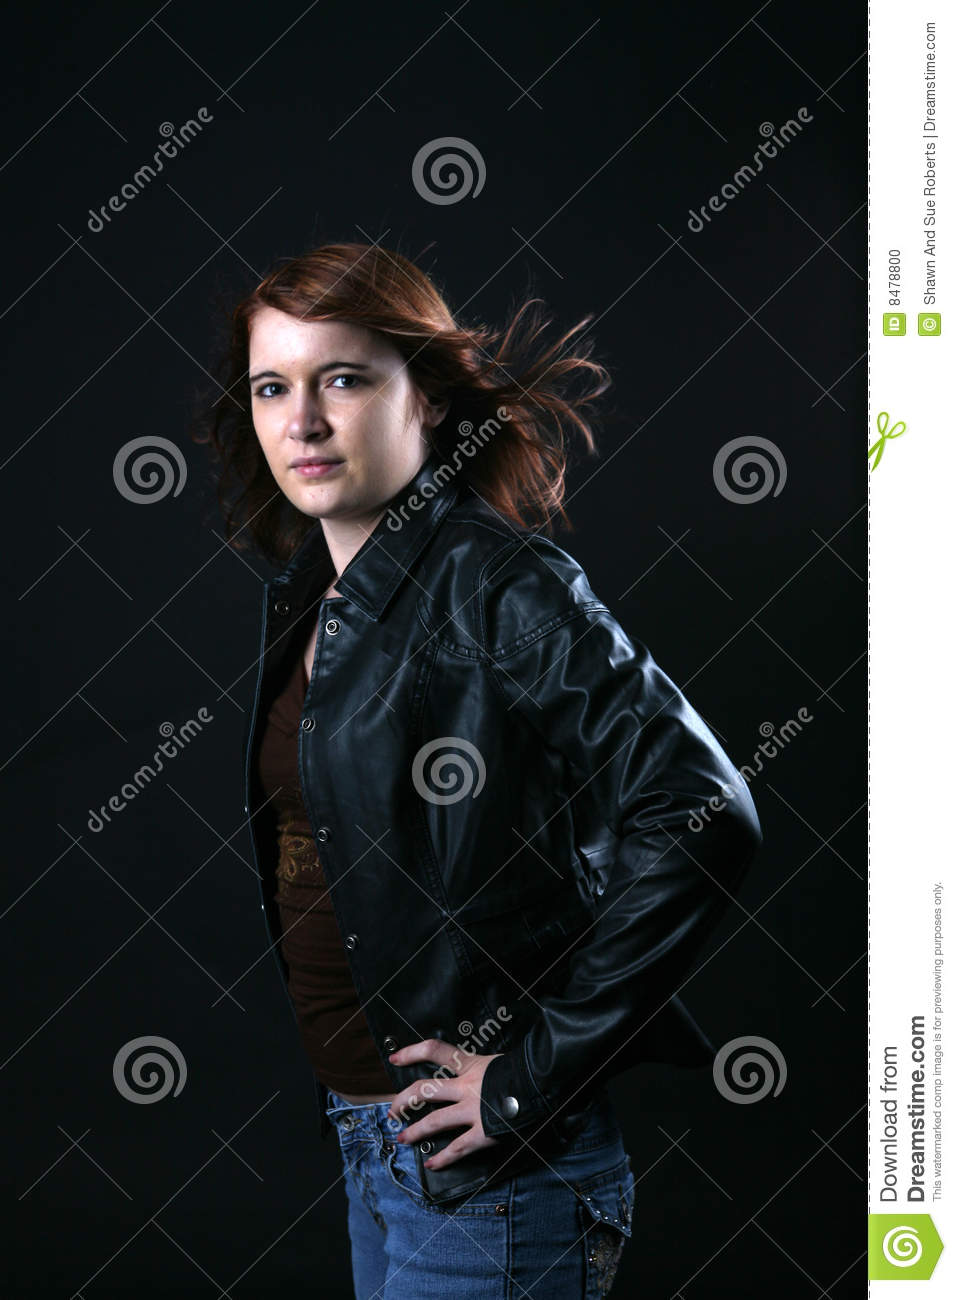 Find great deals on eBay for teen leather jacket. Shop with confidence.